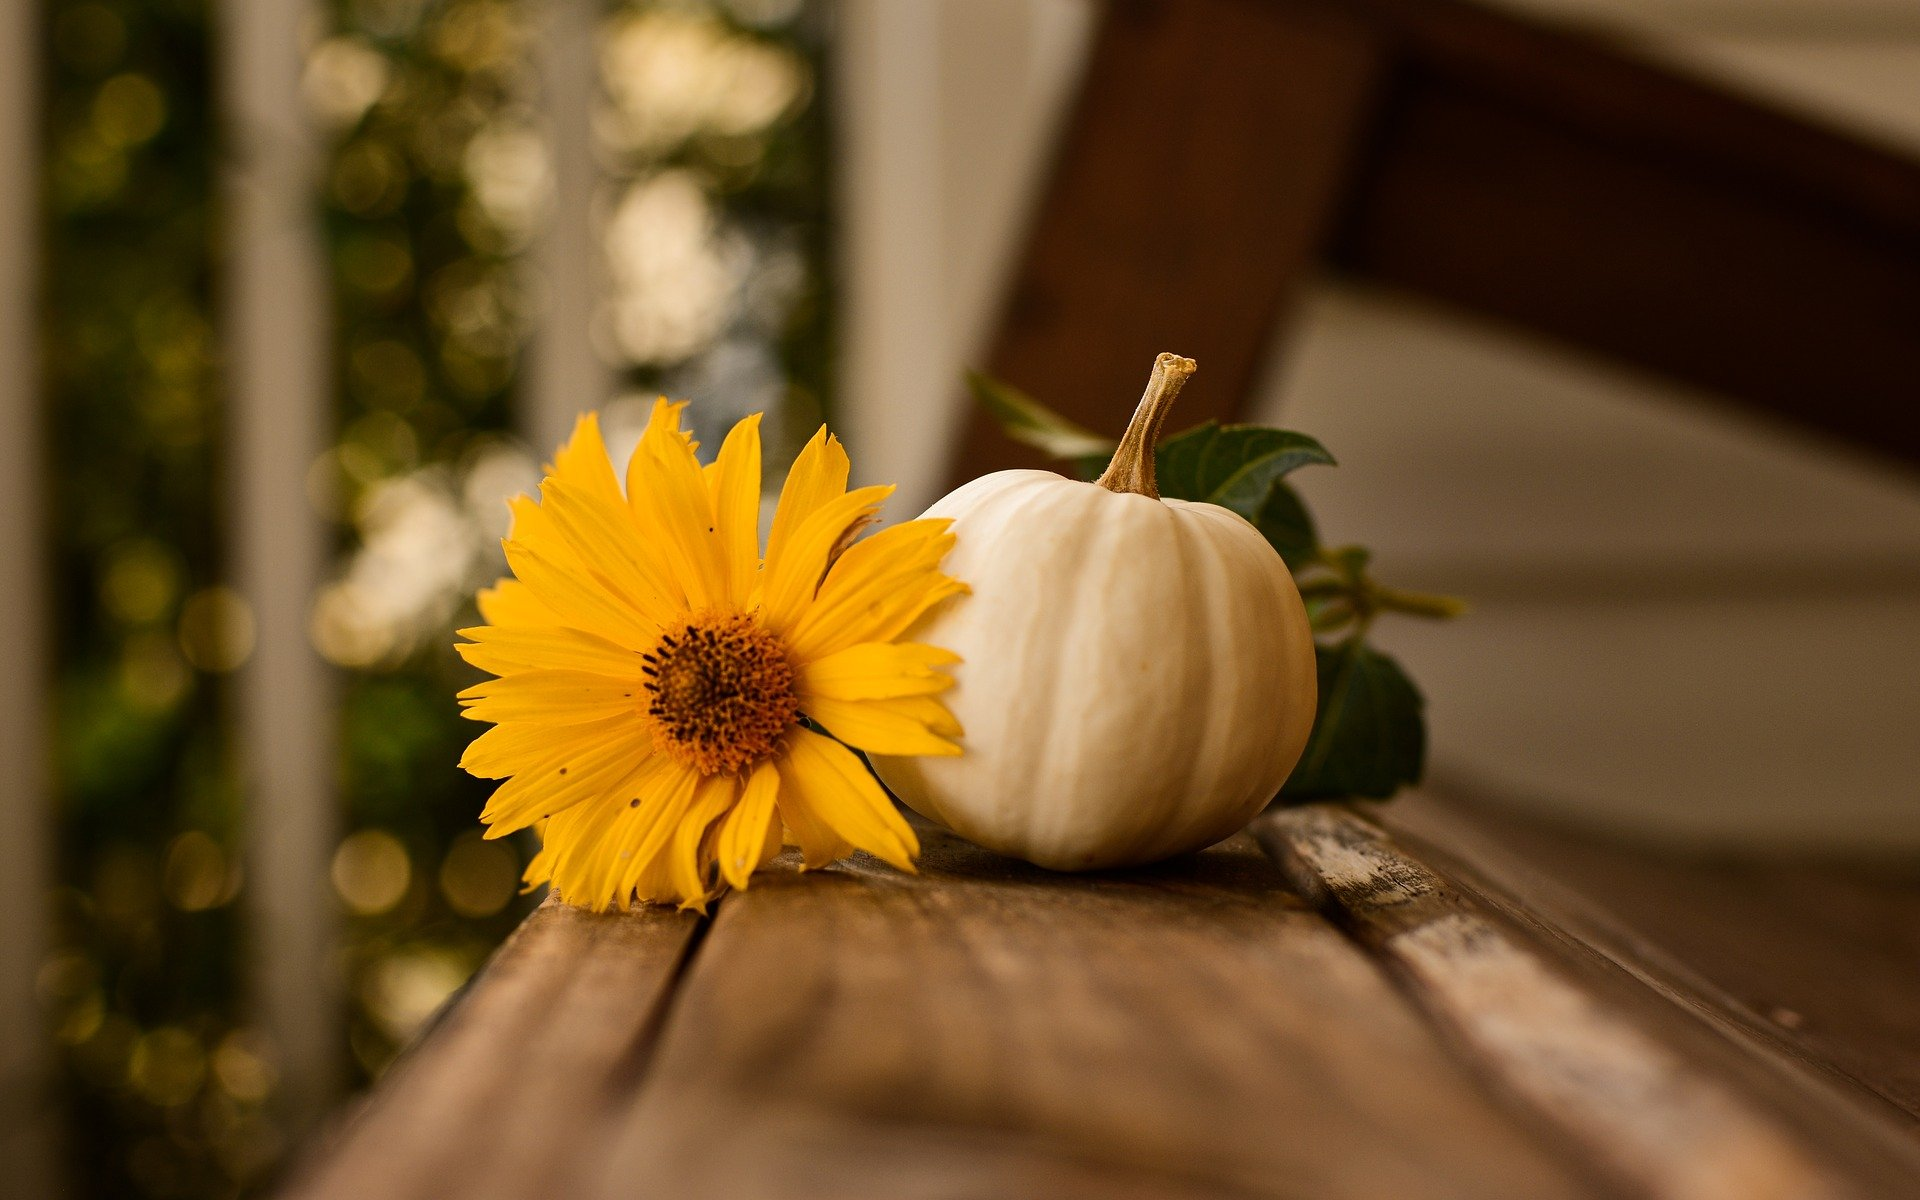 Photo of a Pumpkin with Yellow Flower